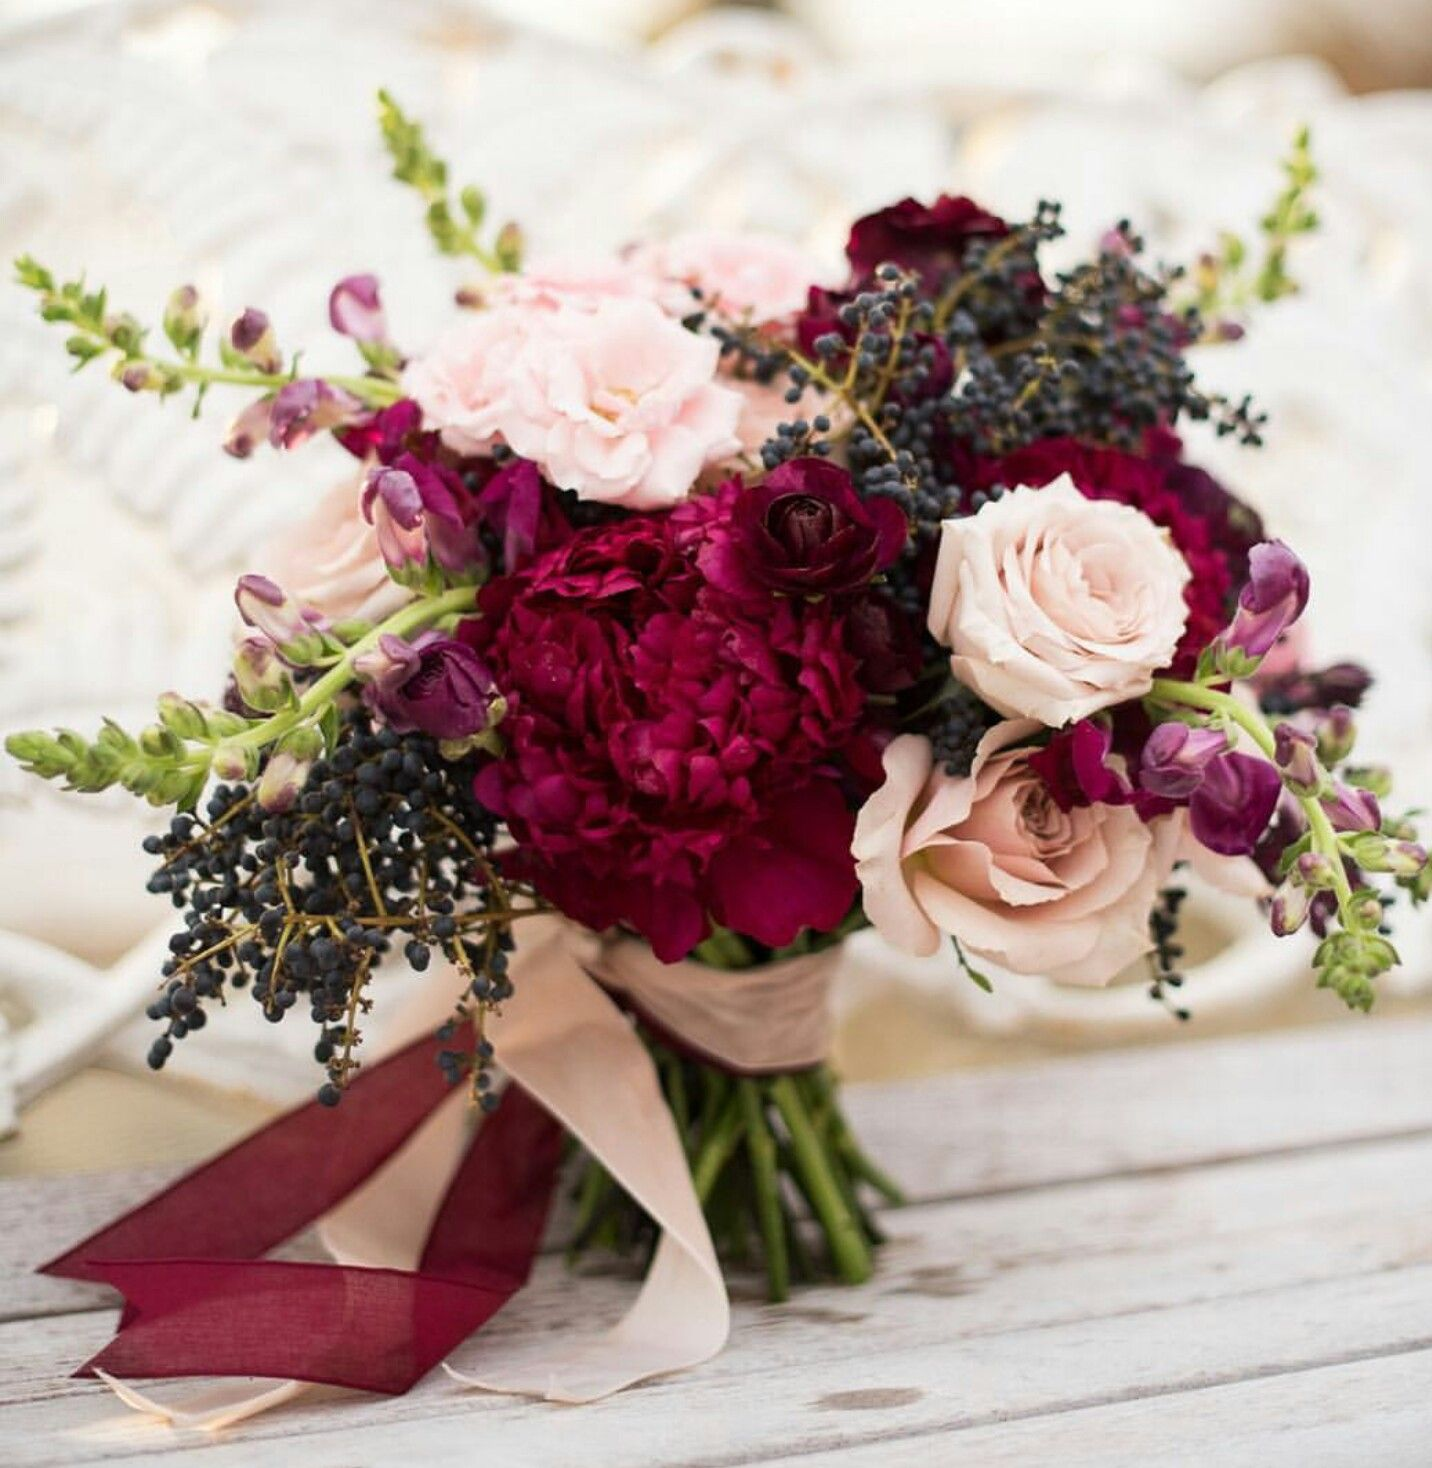 Pin by Sydney Fitzgerald on Floral | Pinterest | Wedding, Flowers ...